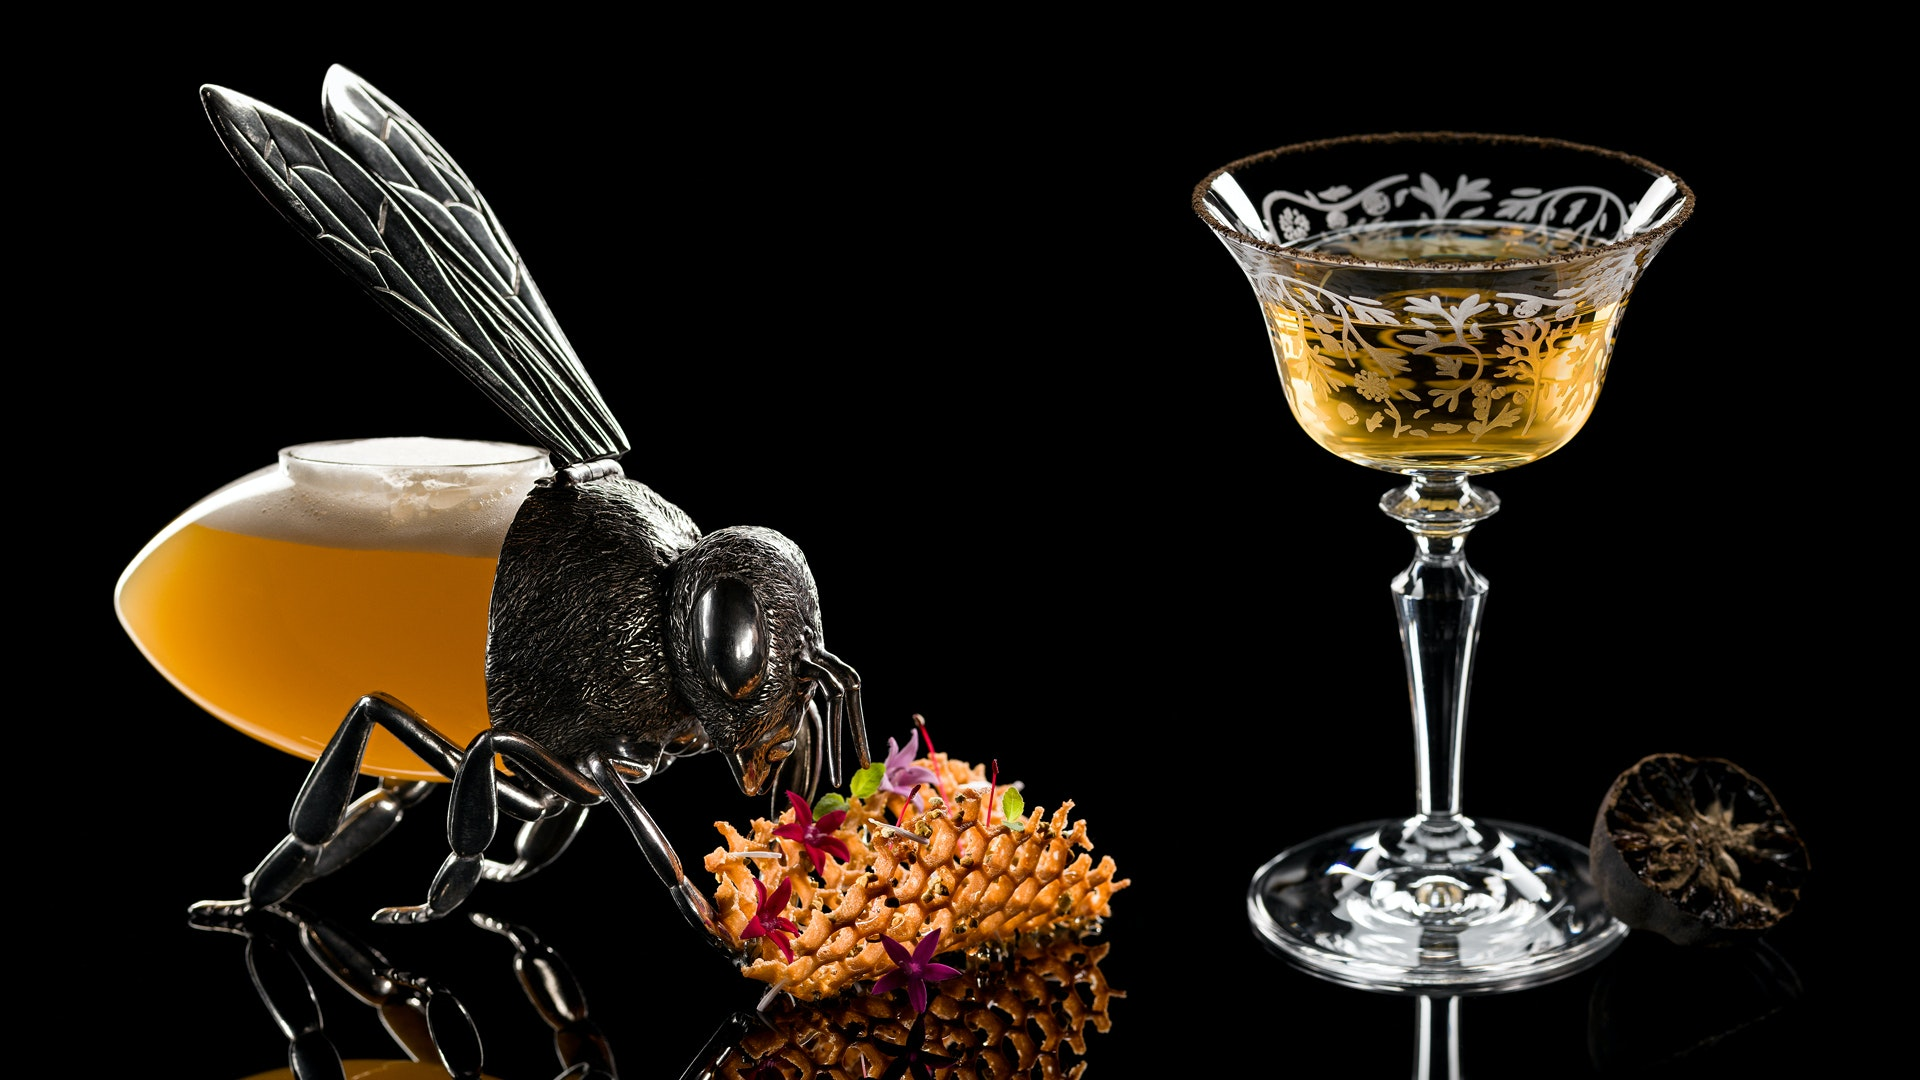 """Nektar"" is presented in a bee-shaped glass; inspired by the Silk Road, ""Cyrus"" features vodka, Iranian black lemon powder, and Lillet, a wine-based citrus aperitif."